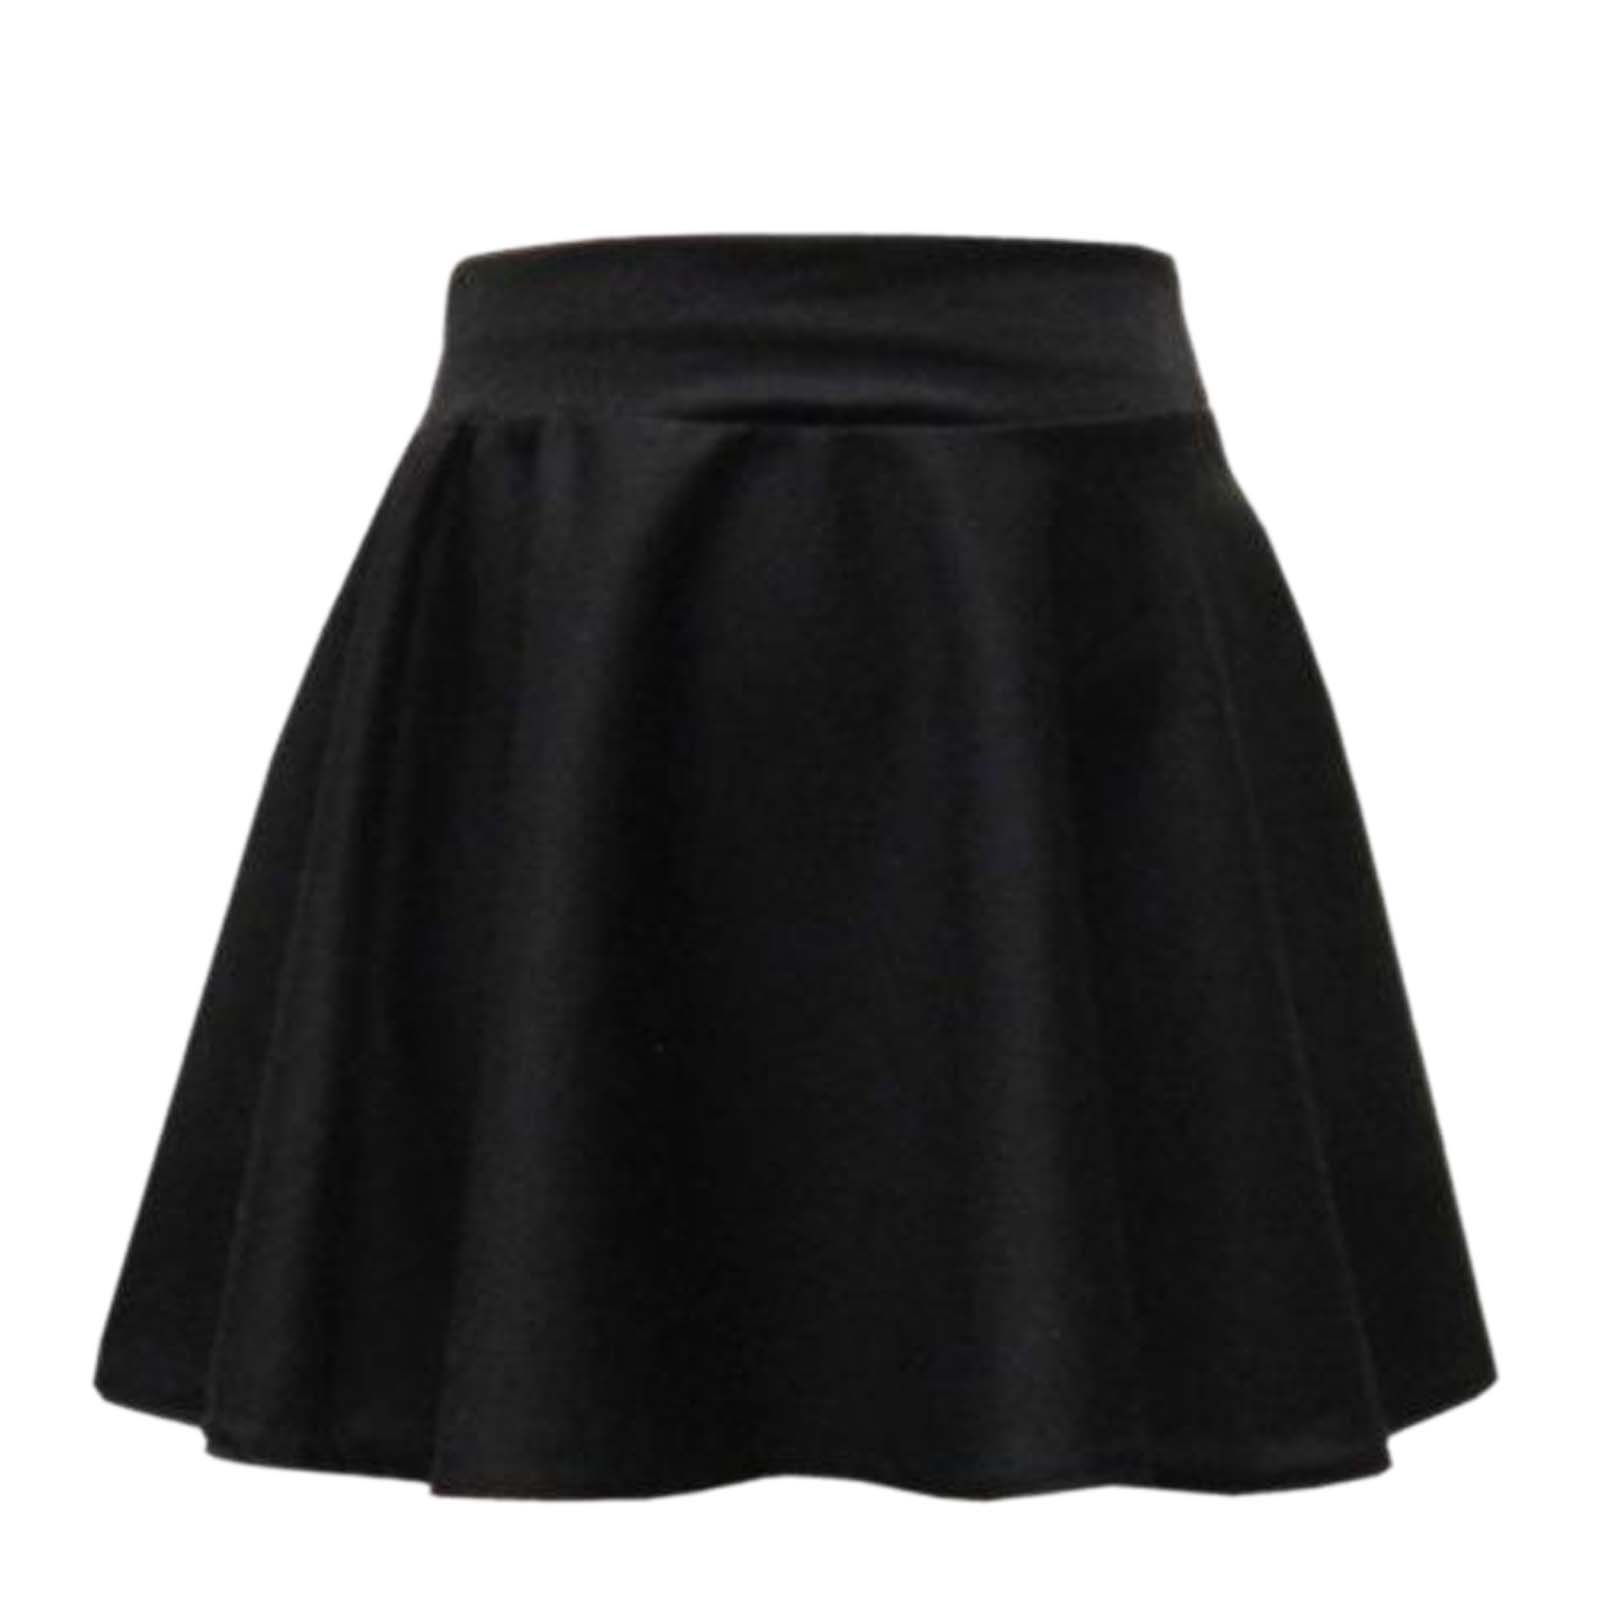 Find Women's Black Skirts, Plus Size Black Skirts, and Juniors Black Skirt at Macy's. Macy's Presents: The Edit - A curated mix of fashion and inspiration Check It Out Free Shipping with $75 purchase + Free Store Pickup.